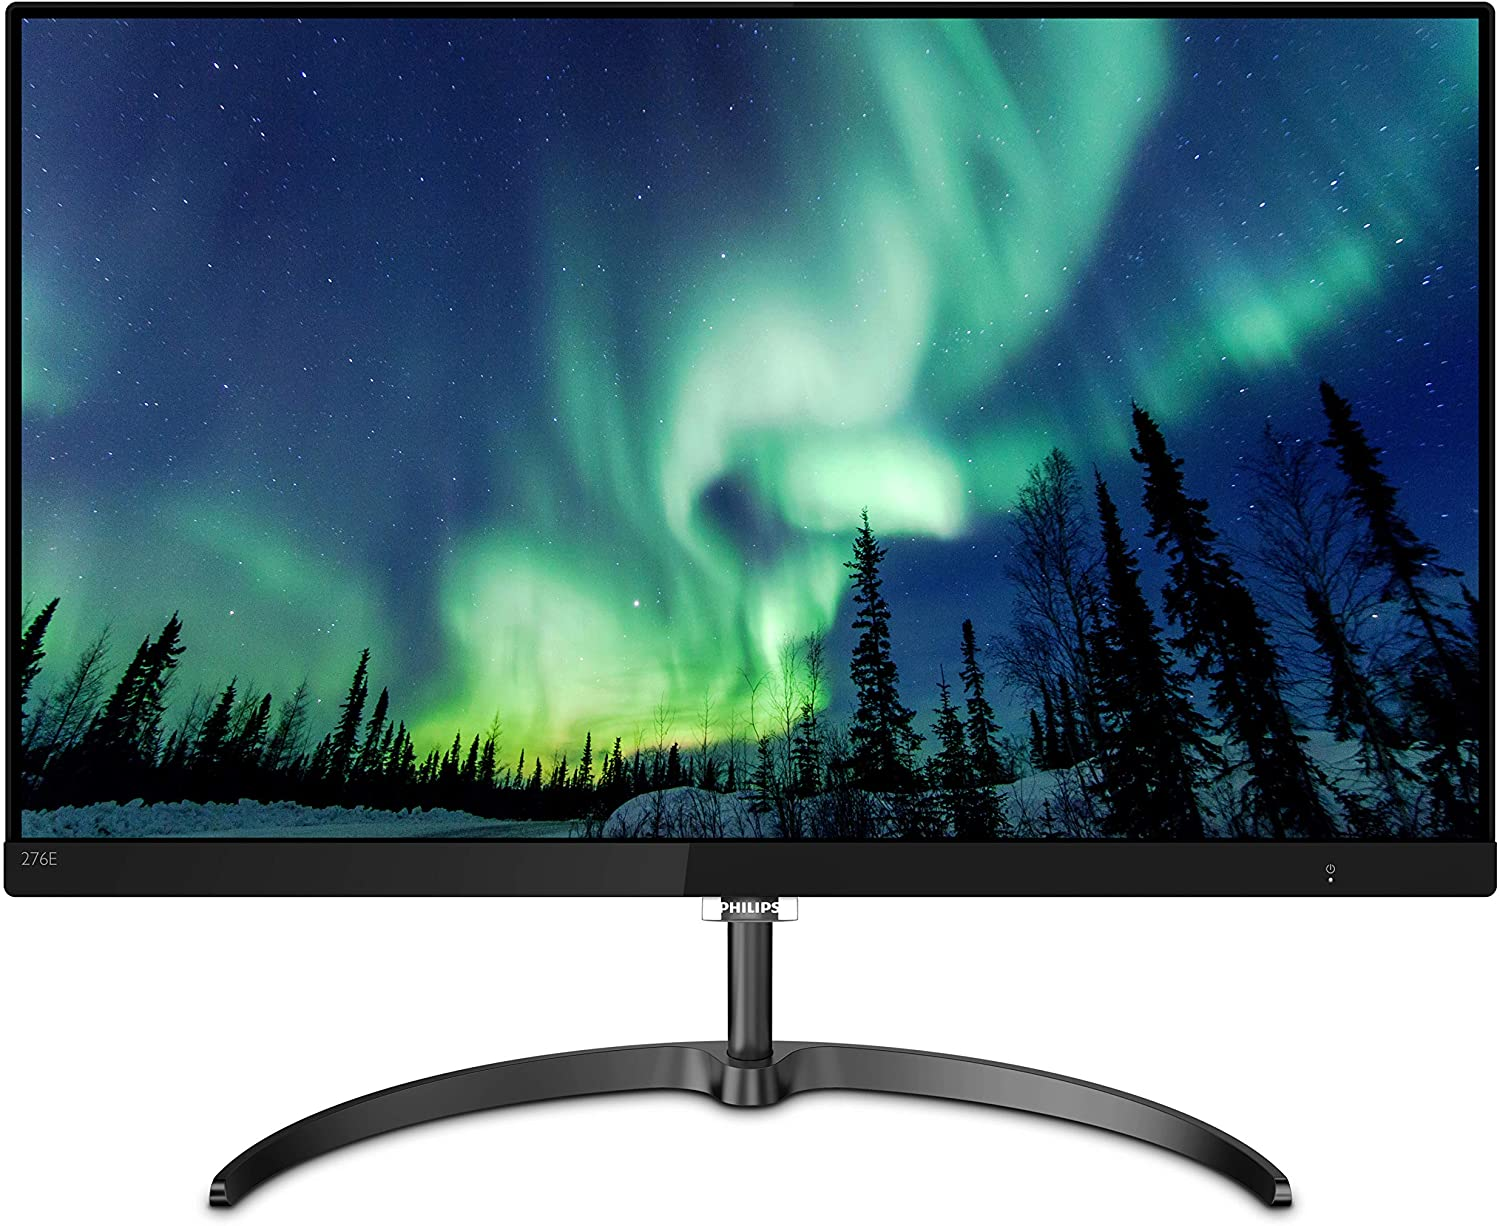 Philips 276E8VJSB 27 Inch Monitor